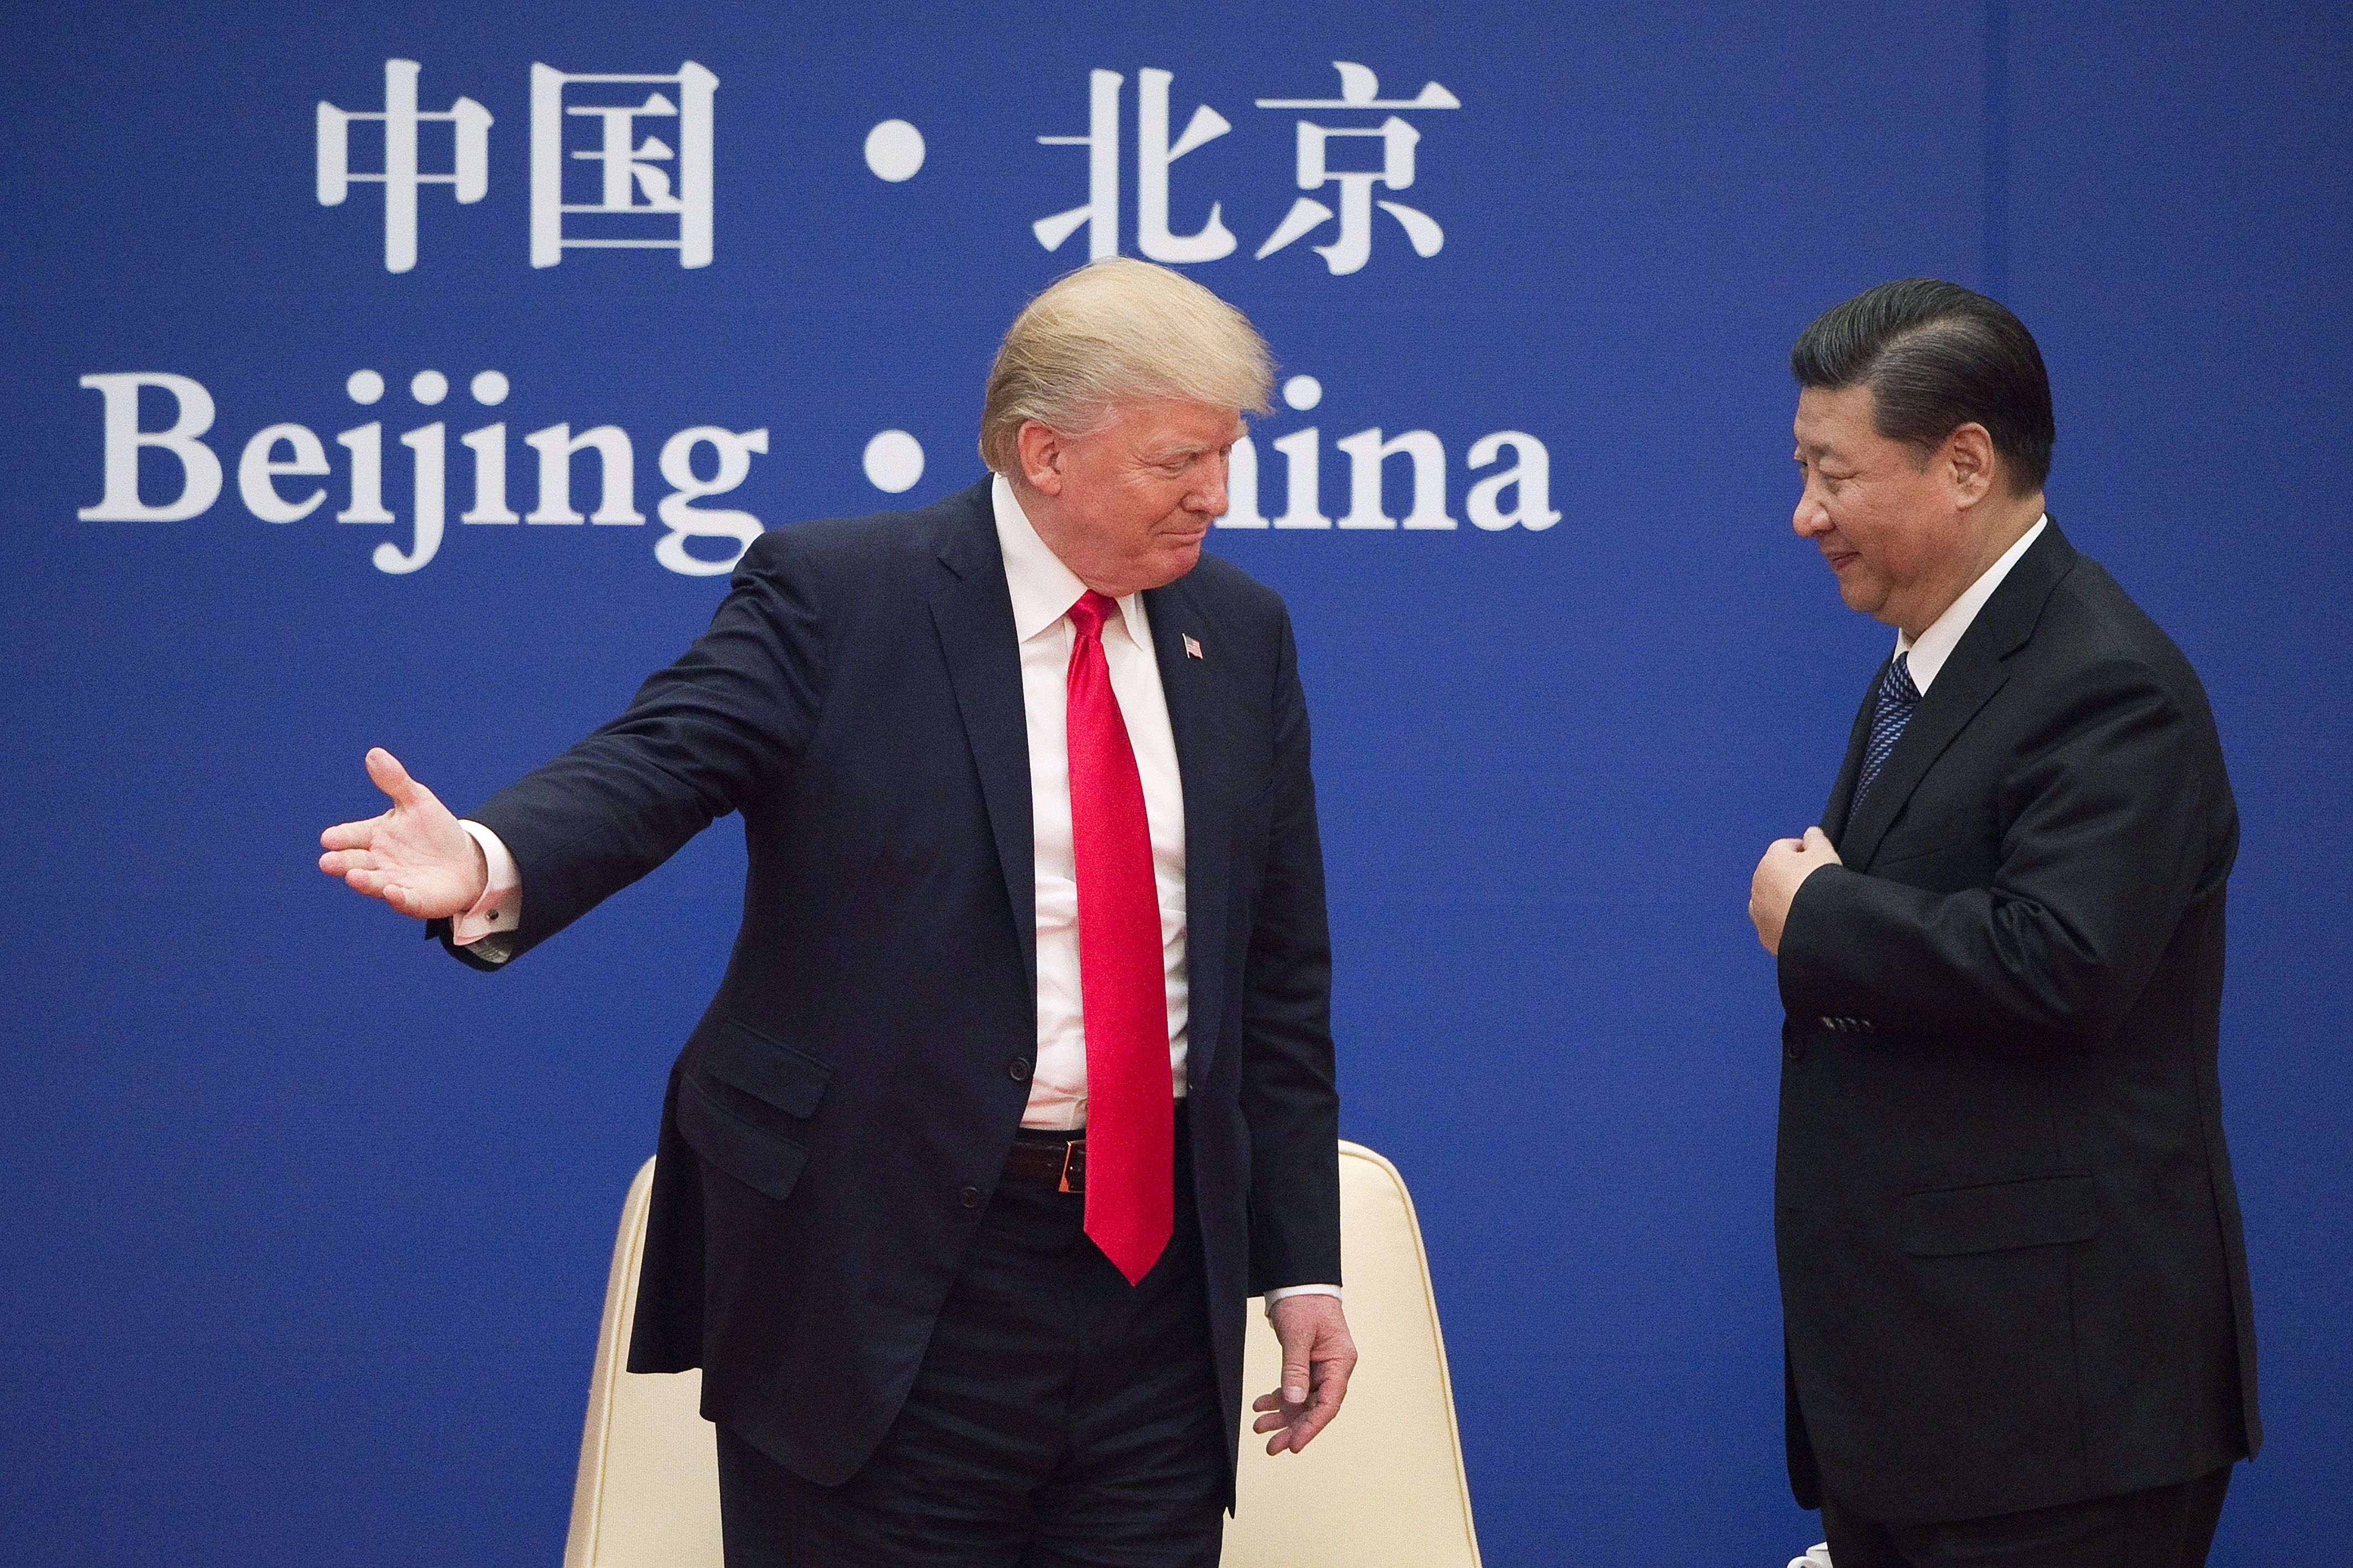 US President Donald Trump (L) gestures next to China's President Xi Jinping during a business leaders event at the Great Hall of the People in Beijing on November 9, 2017.